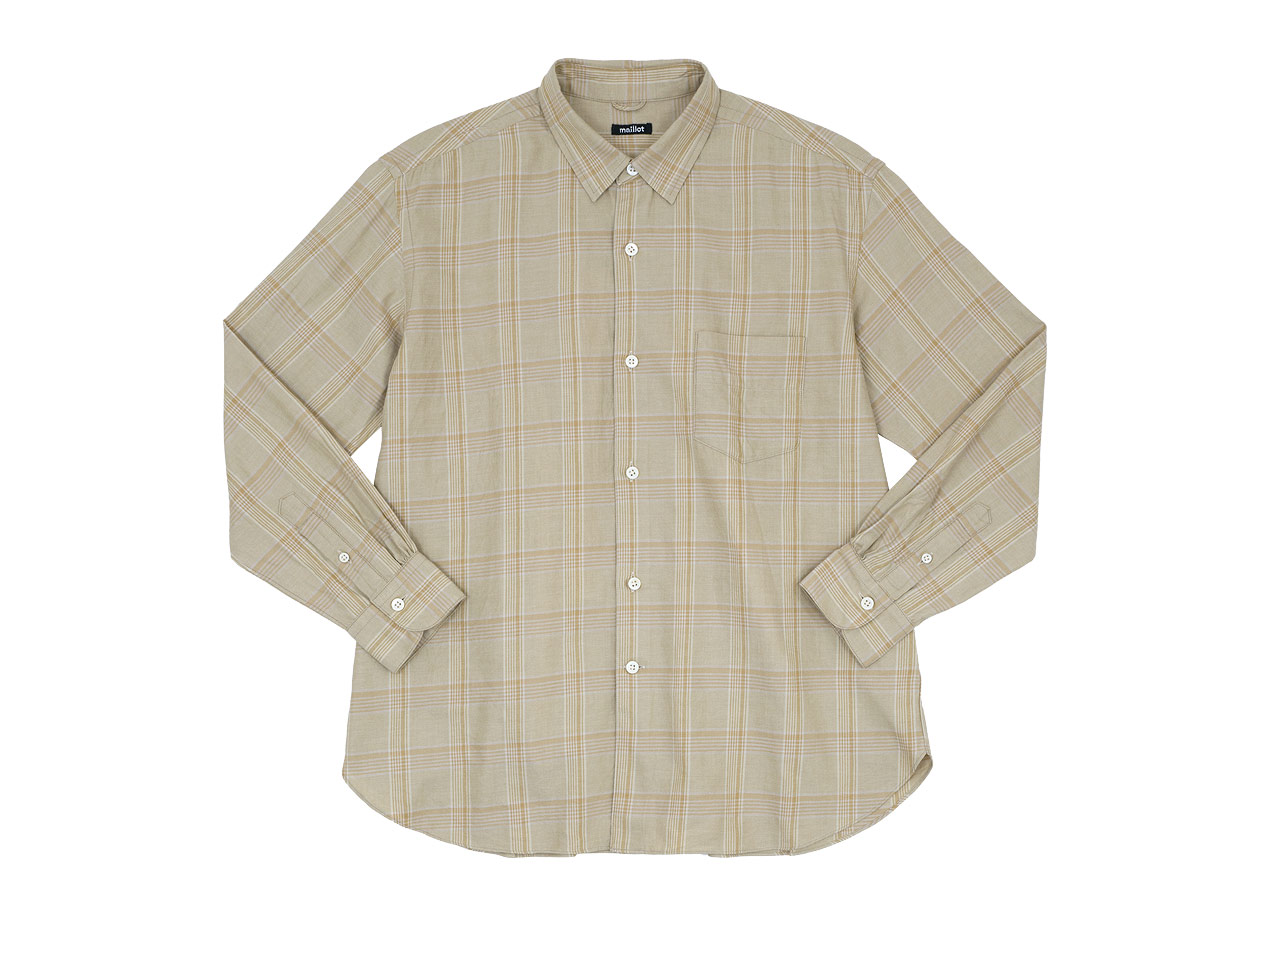 maillot mature twill check regular shirts  / twill check pull over stand shirts